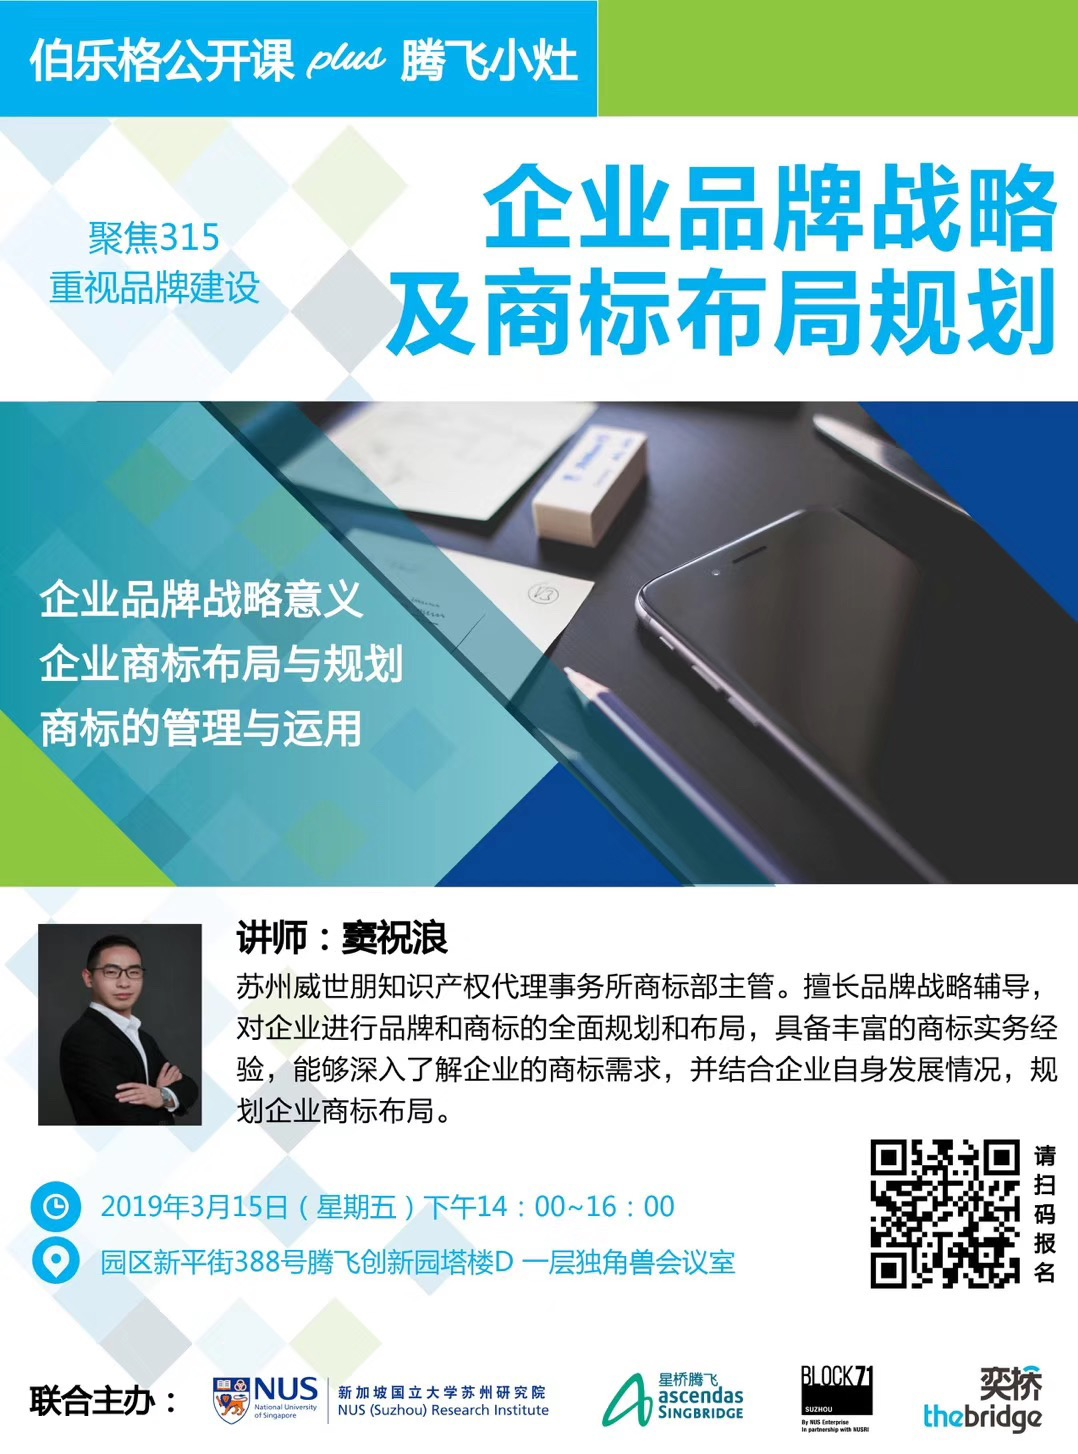 Workshop on corporate brand strategy and trademark layout planning by BLOCK71 Suzhou+ the bridge